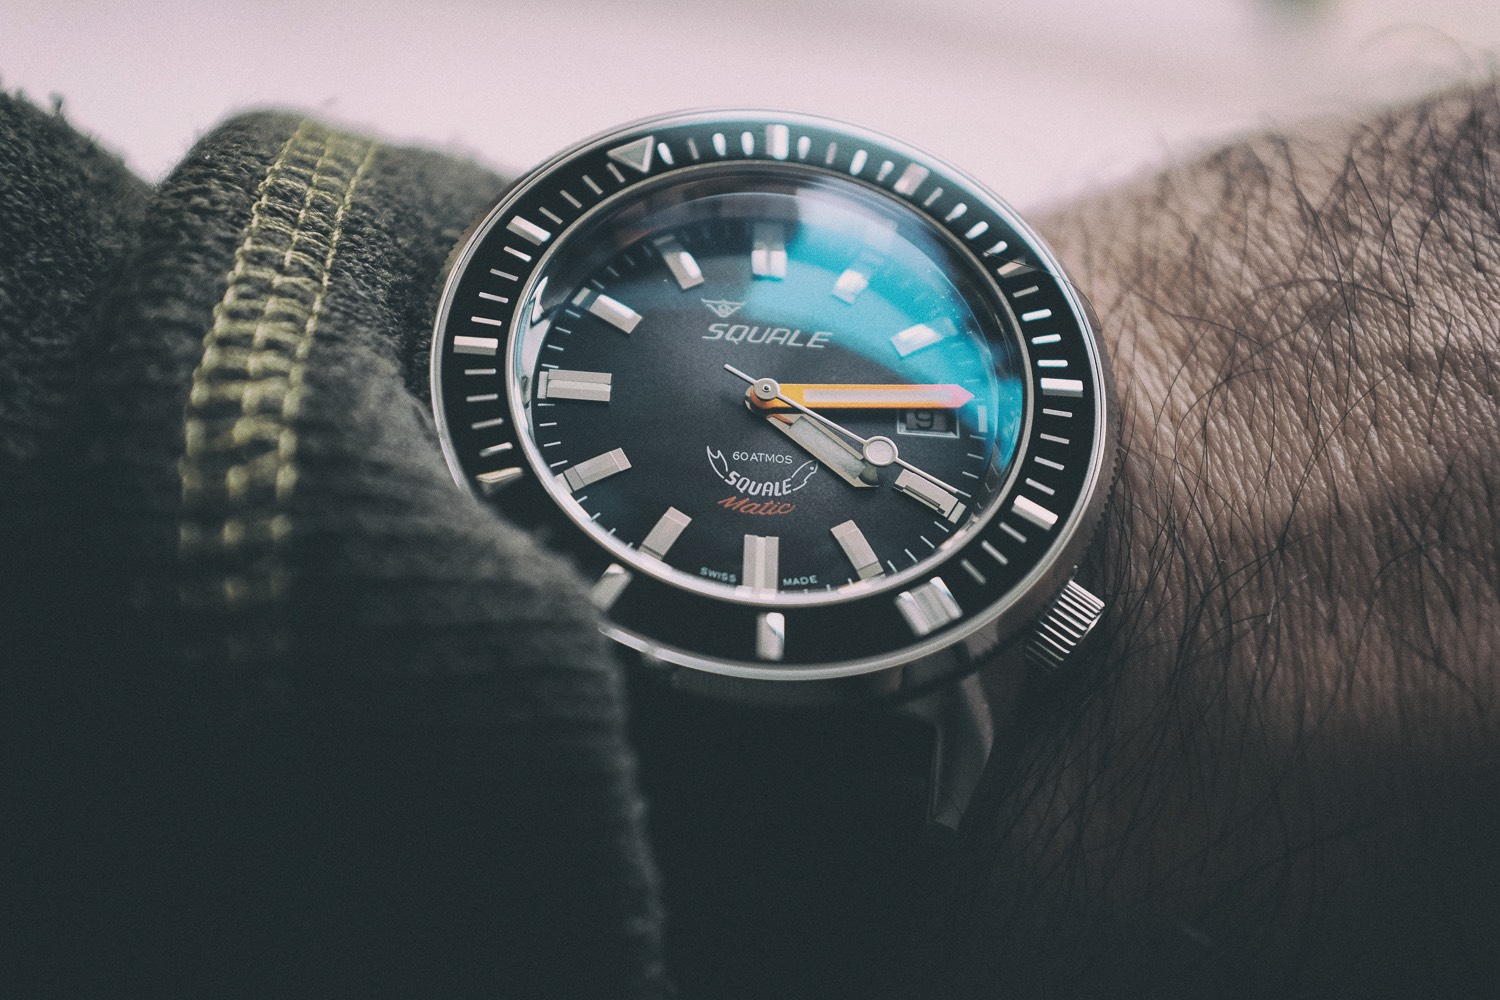 stainless tgv atmos new shark unboxing in a my diver catches steel youtube watch squale watches